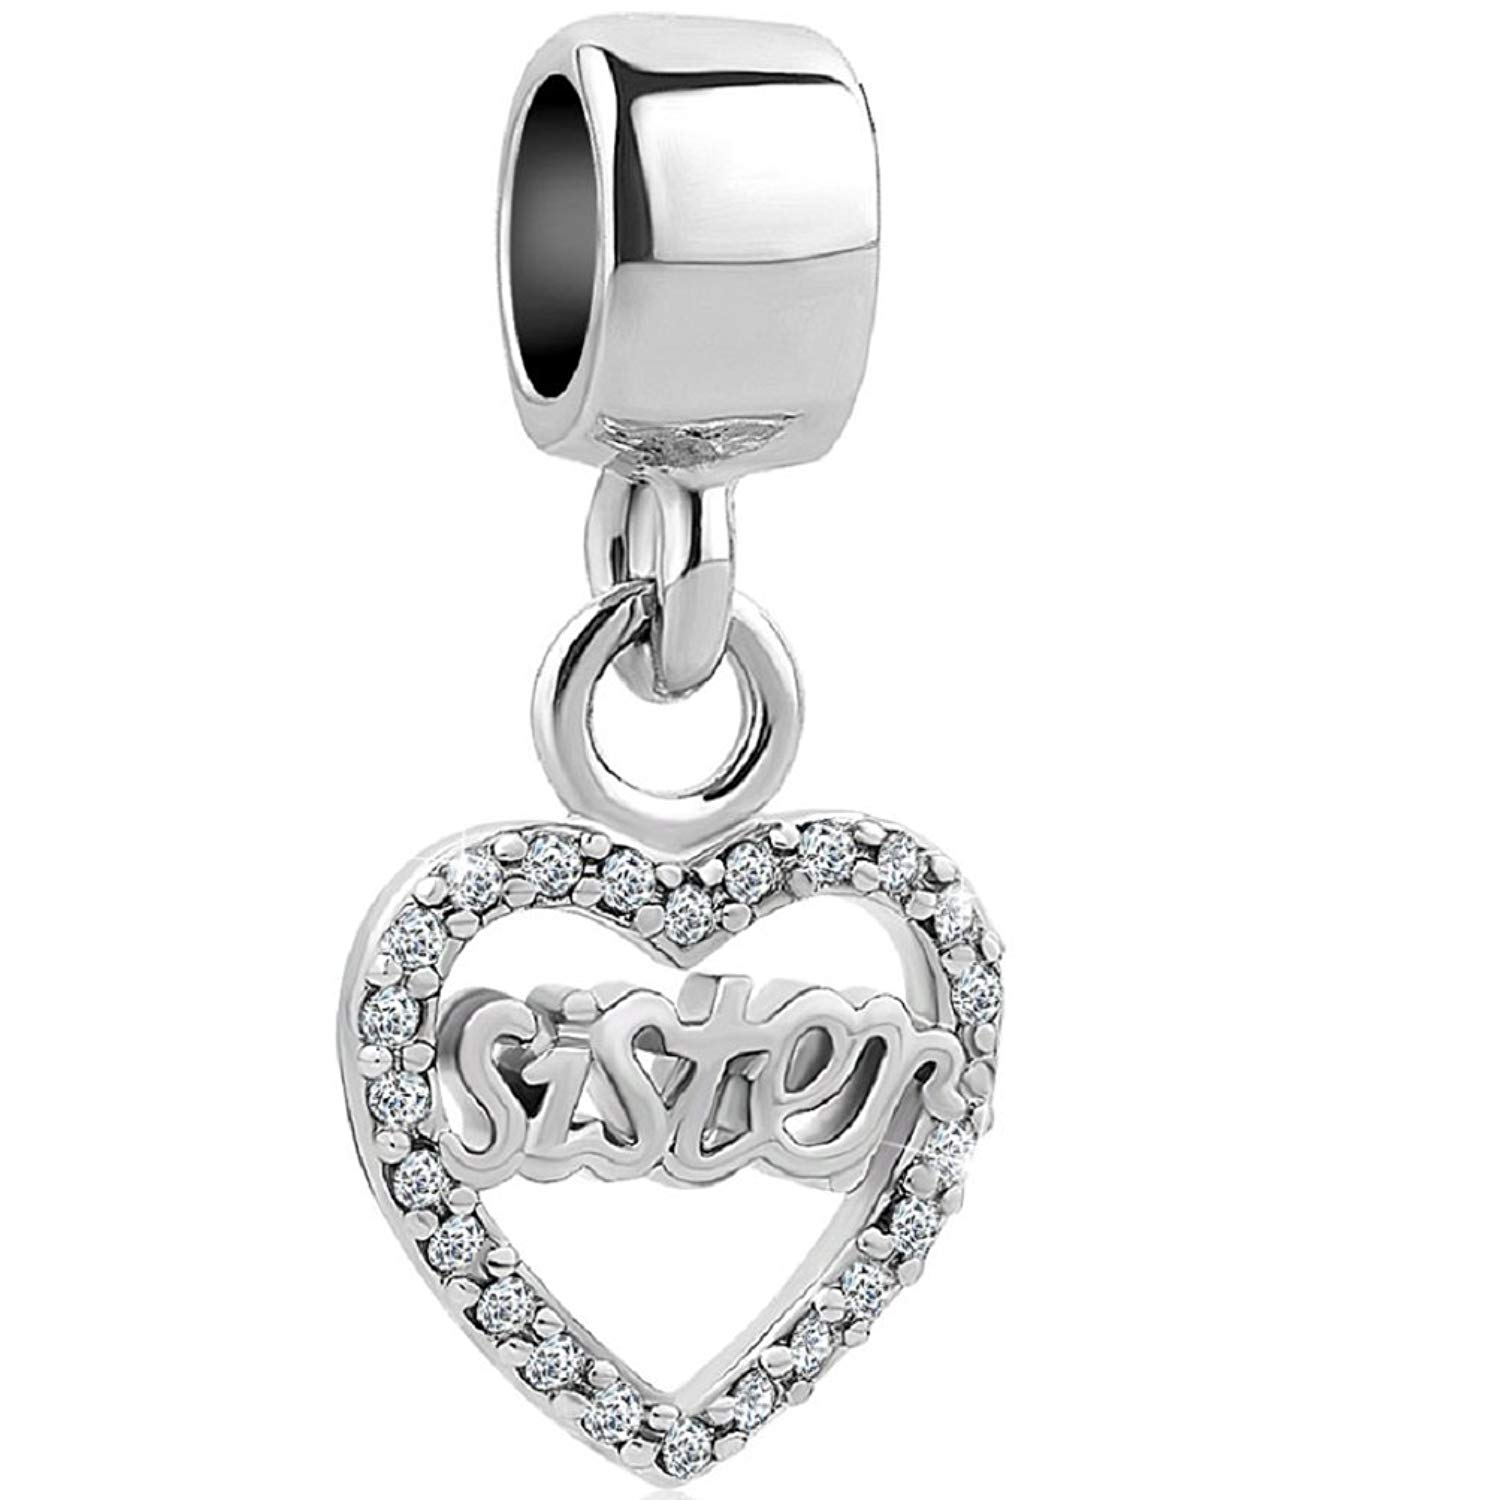 f3e7207ab Charmed Craft Dangle Heart Charms Crystal Love Friend Charms Sister Charms  Beads for Charm Bracelets